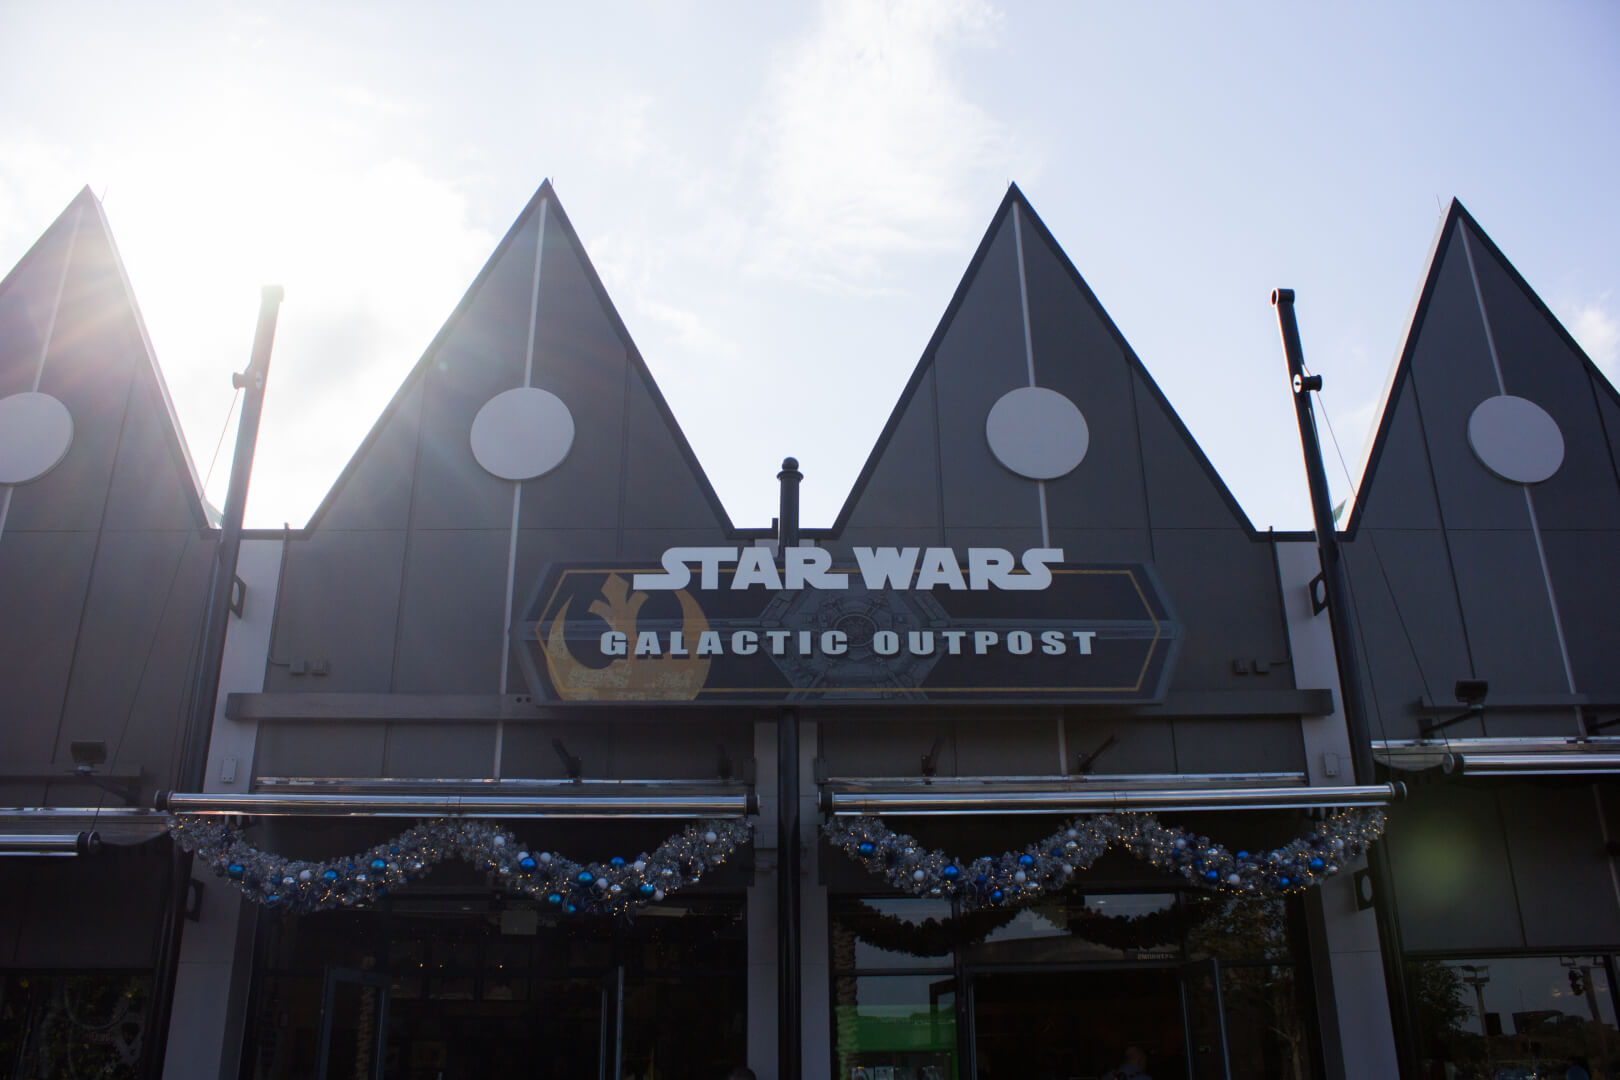 disney springs opens star wars galactic outpost store dedicated to star wars merchandise. Black Bedroom Furniture Sets. Home Design Ideas